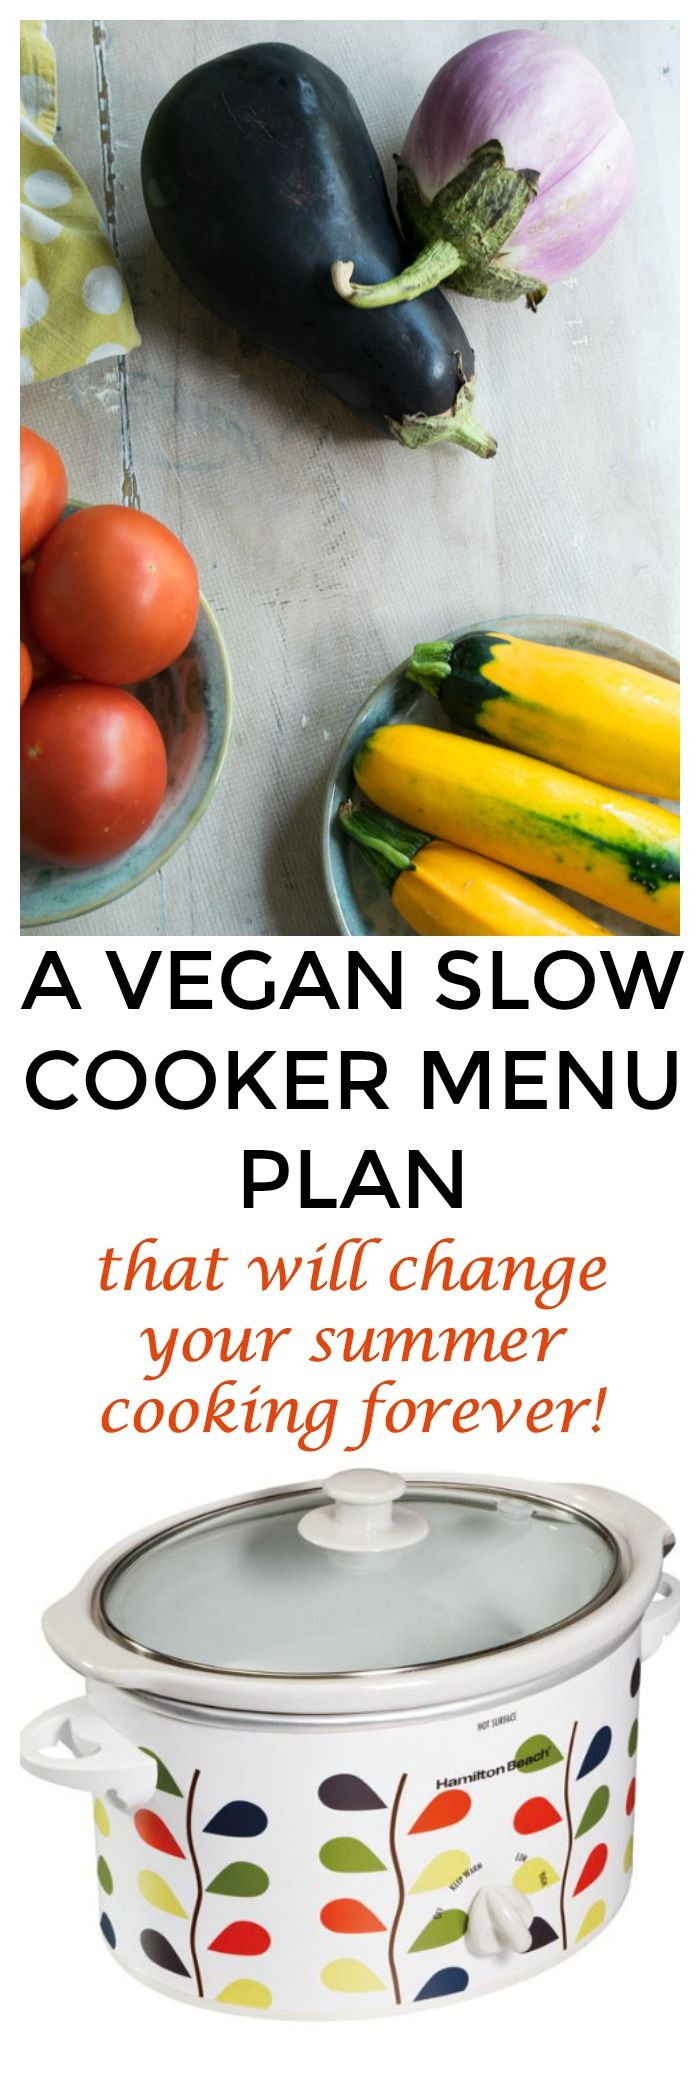 Here's the vegan slow cooker menu plan you need this summer. I have 7 vegan slow cooker recipes that will keep your kitchen cool!